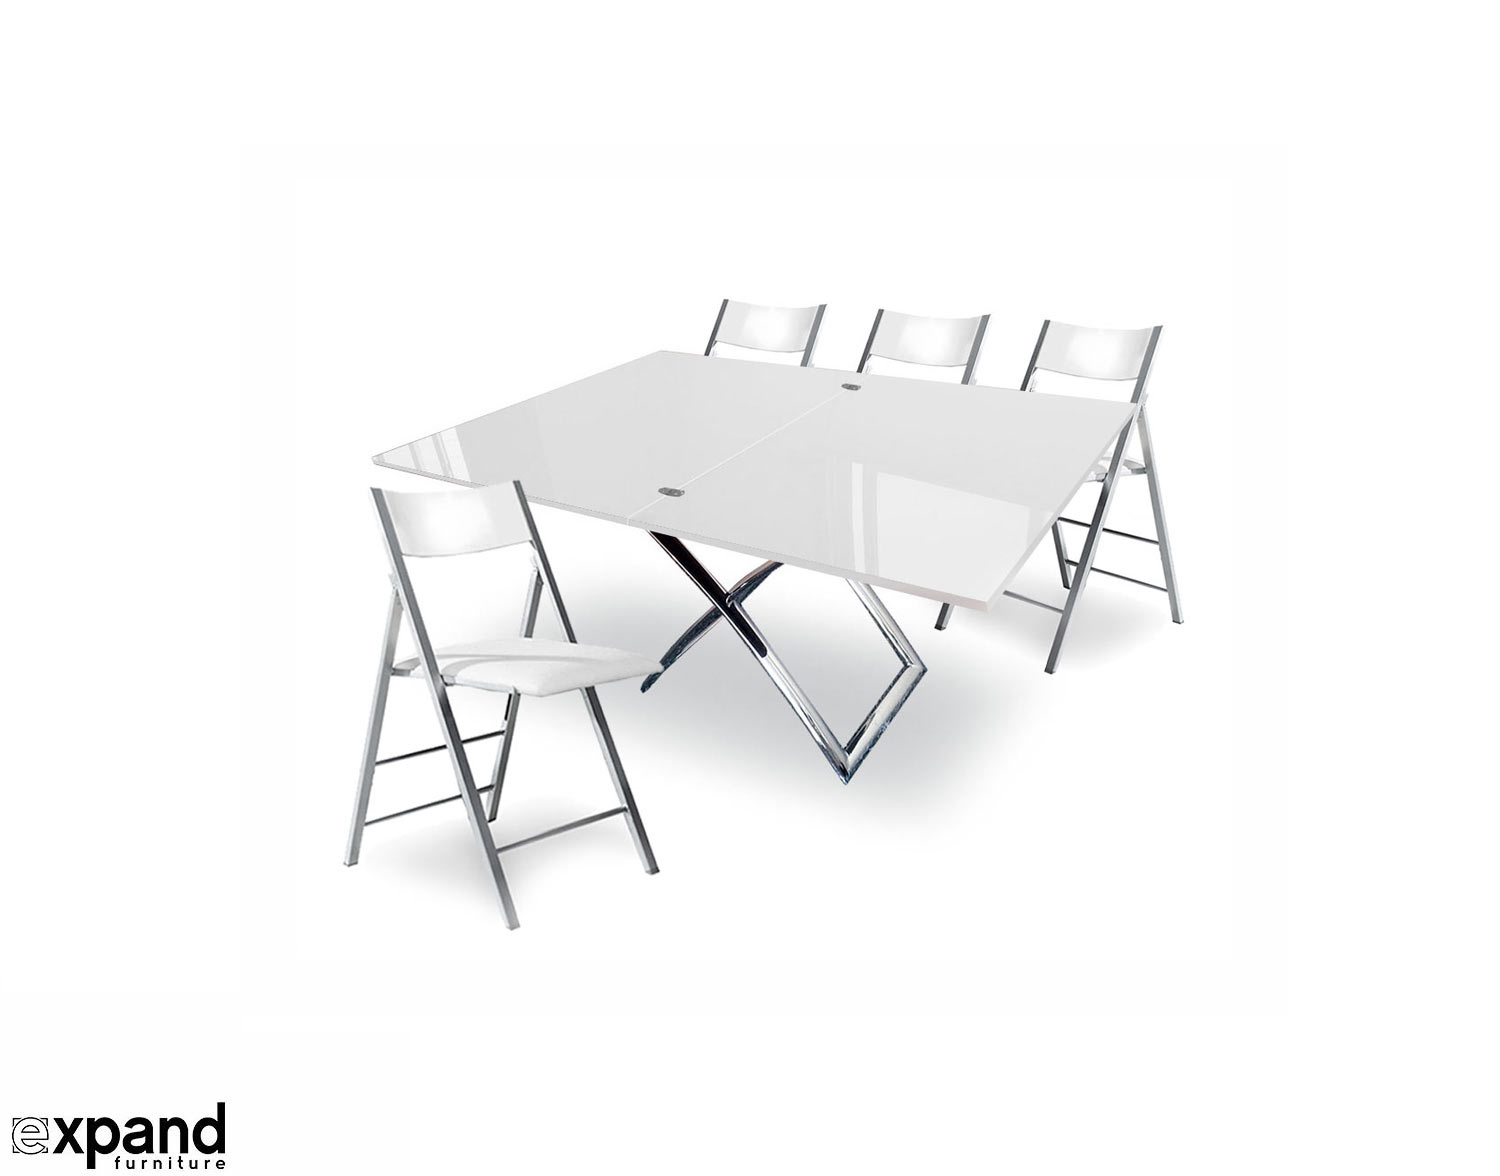 White Space Saving Table And Chairs Expand Modern Dining Table And Chairs Expand Furniture